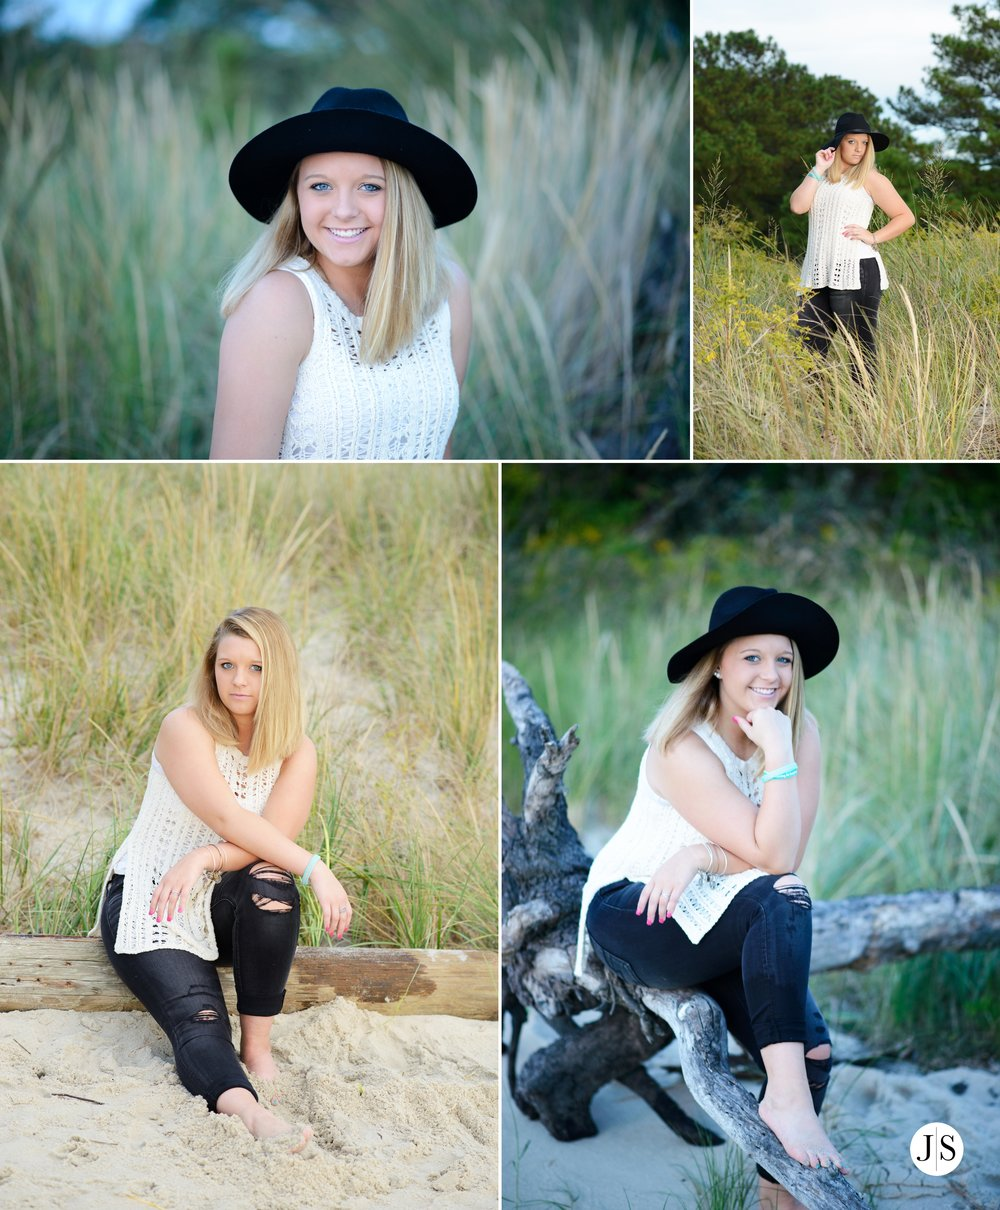 senior-portraits-beach-sunset-salisbury-music-singer-guitar-hat-maryland-photo 14.jpg